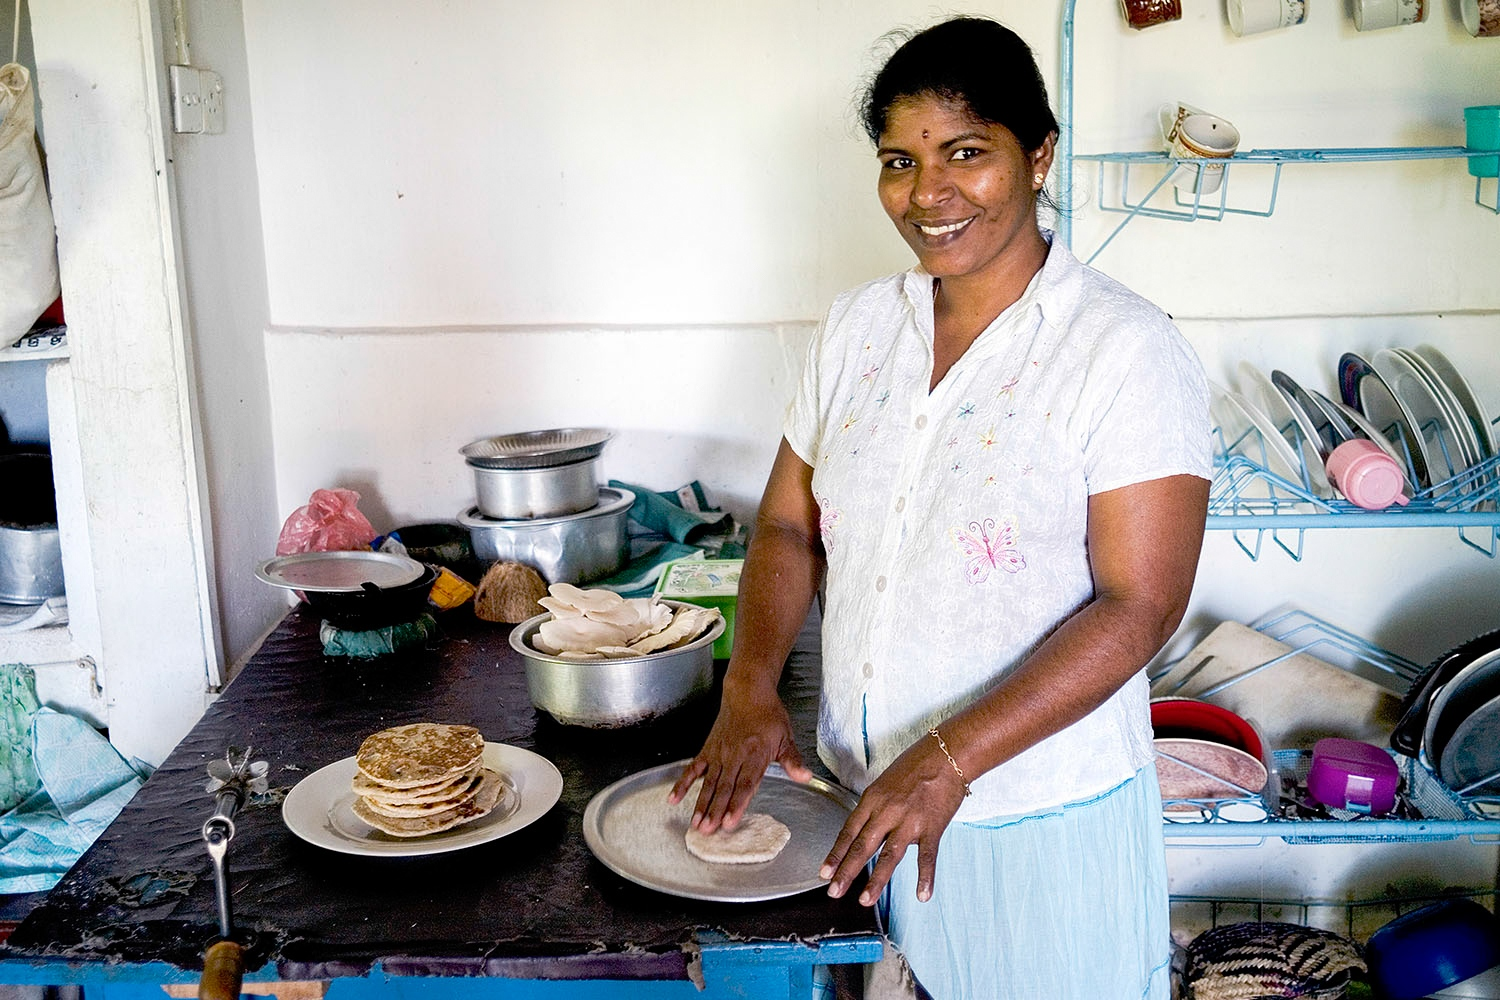 A volunteer makes roti in the community centre kitchen.